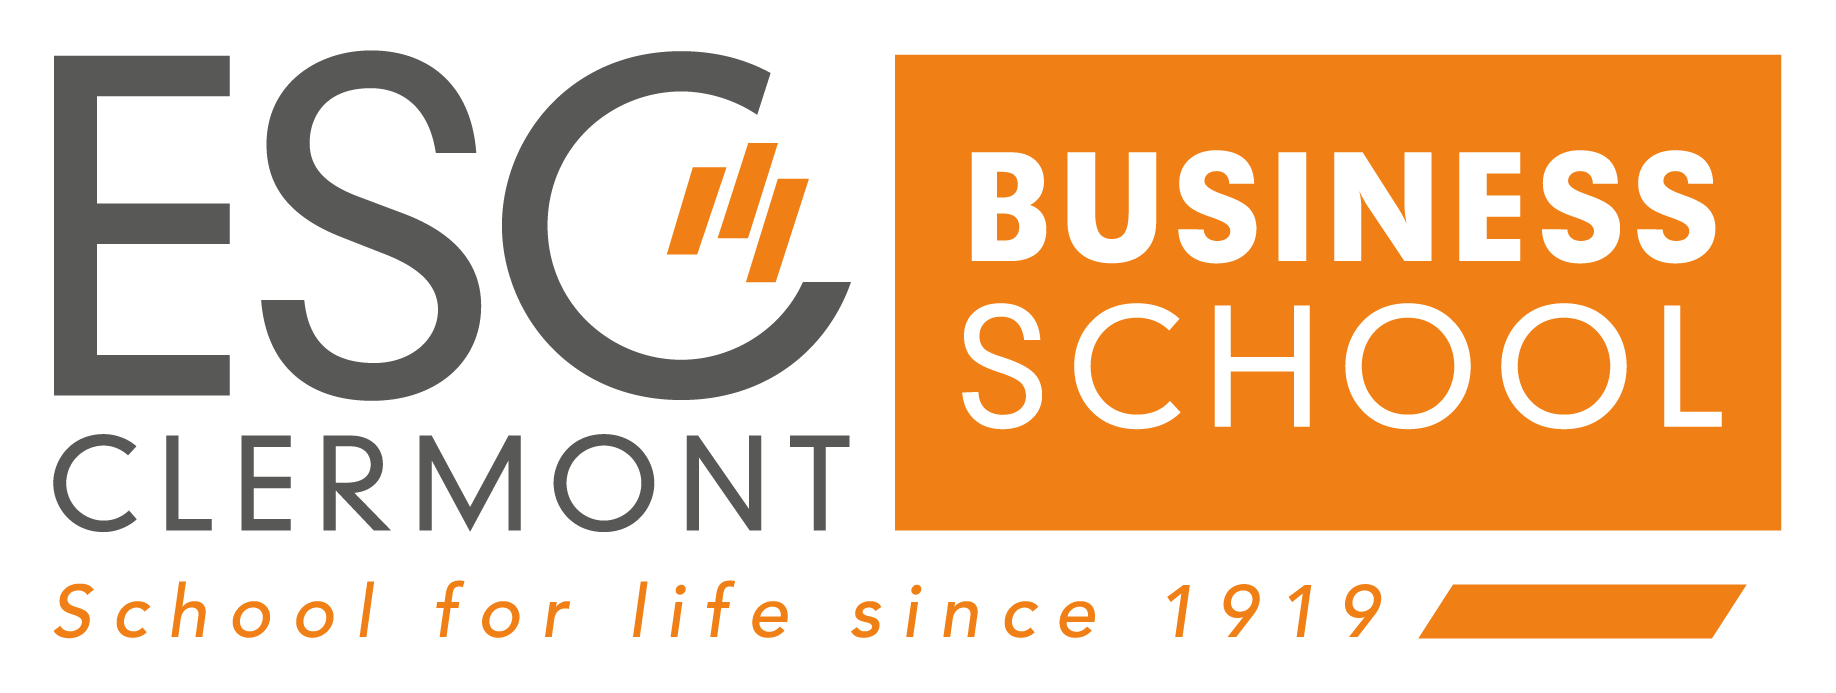 Logo de ESC CLERMONT BUSINESS SCHOOL